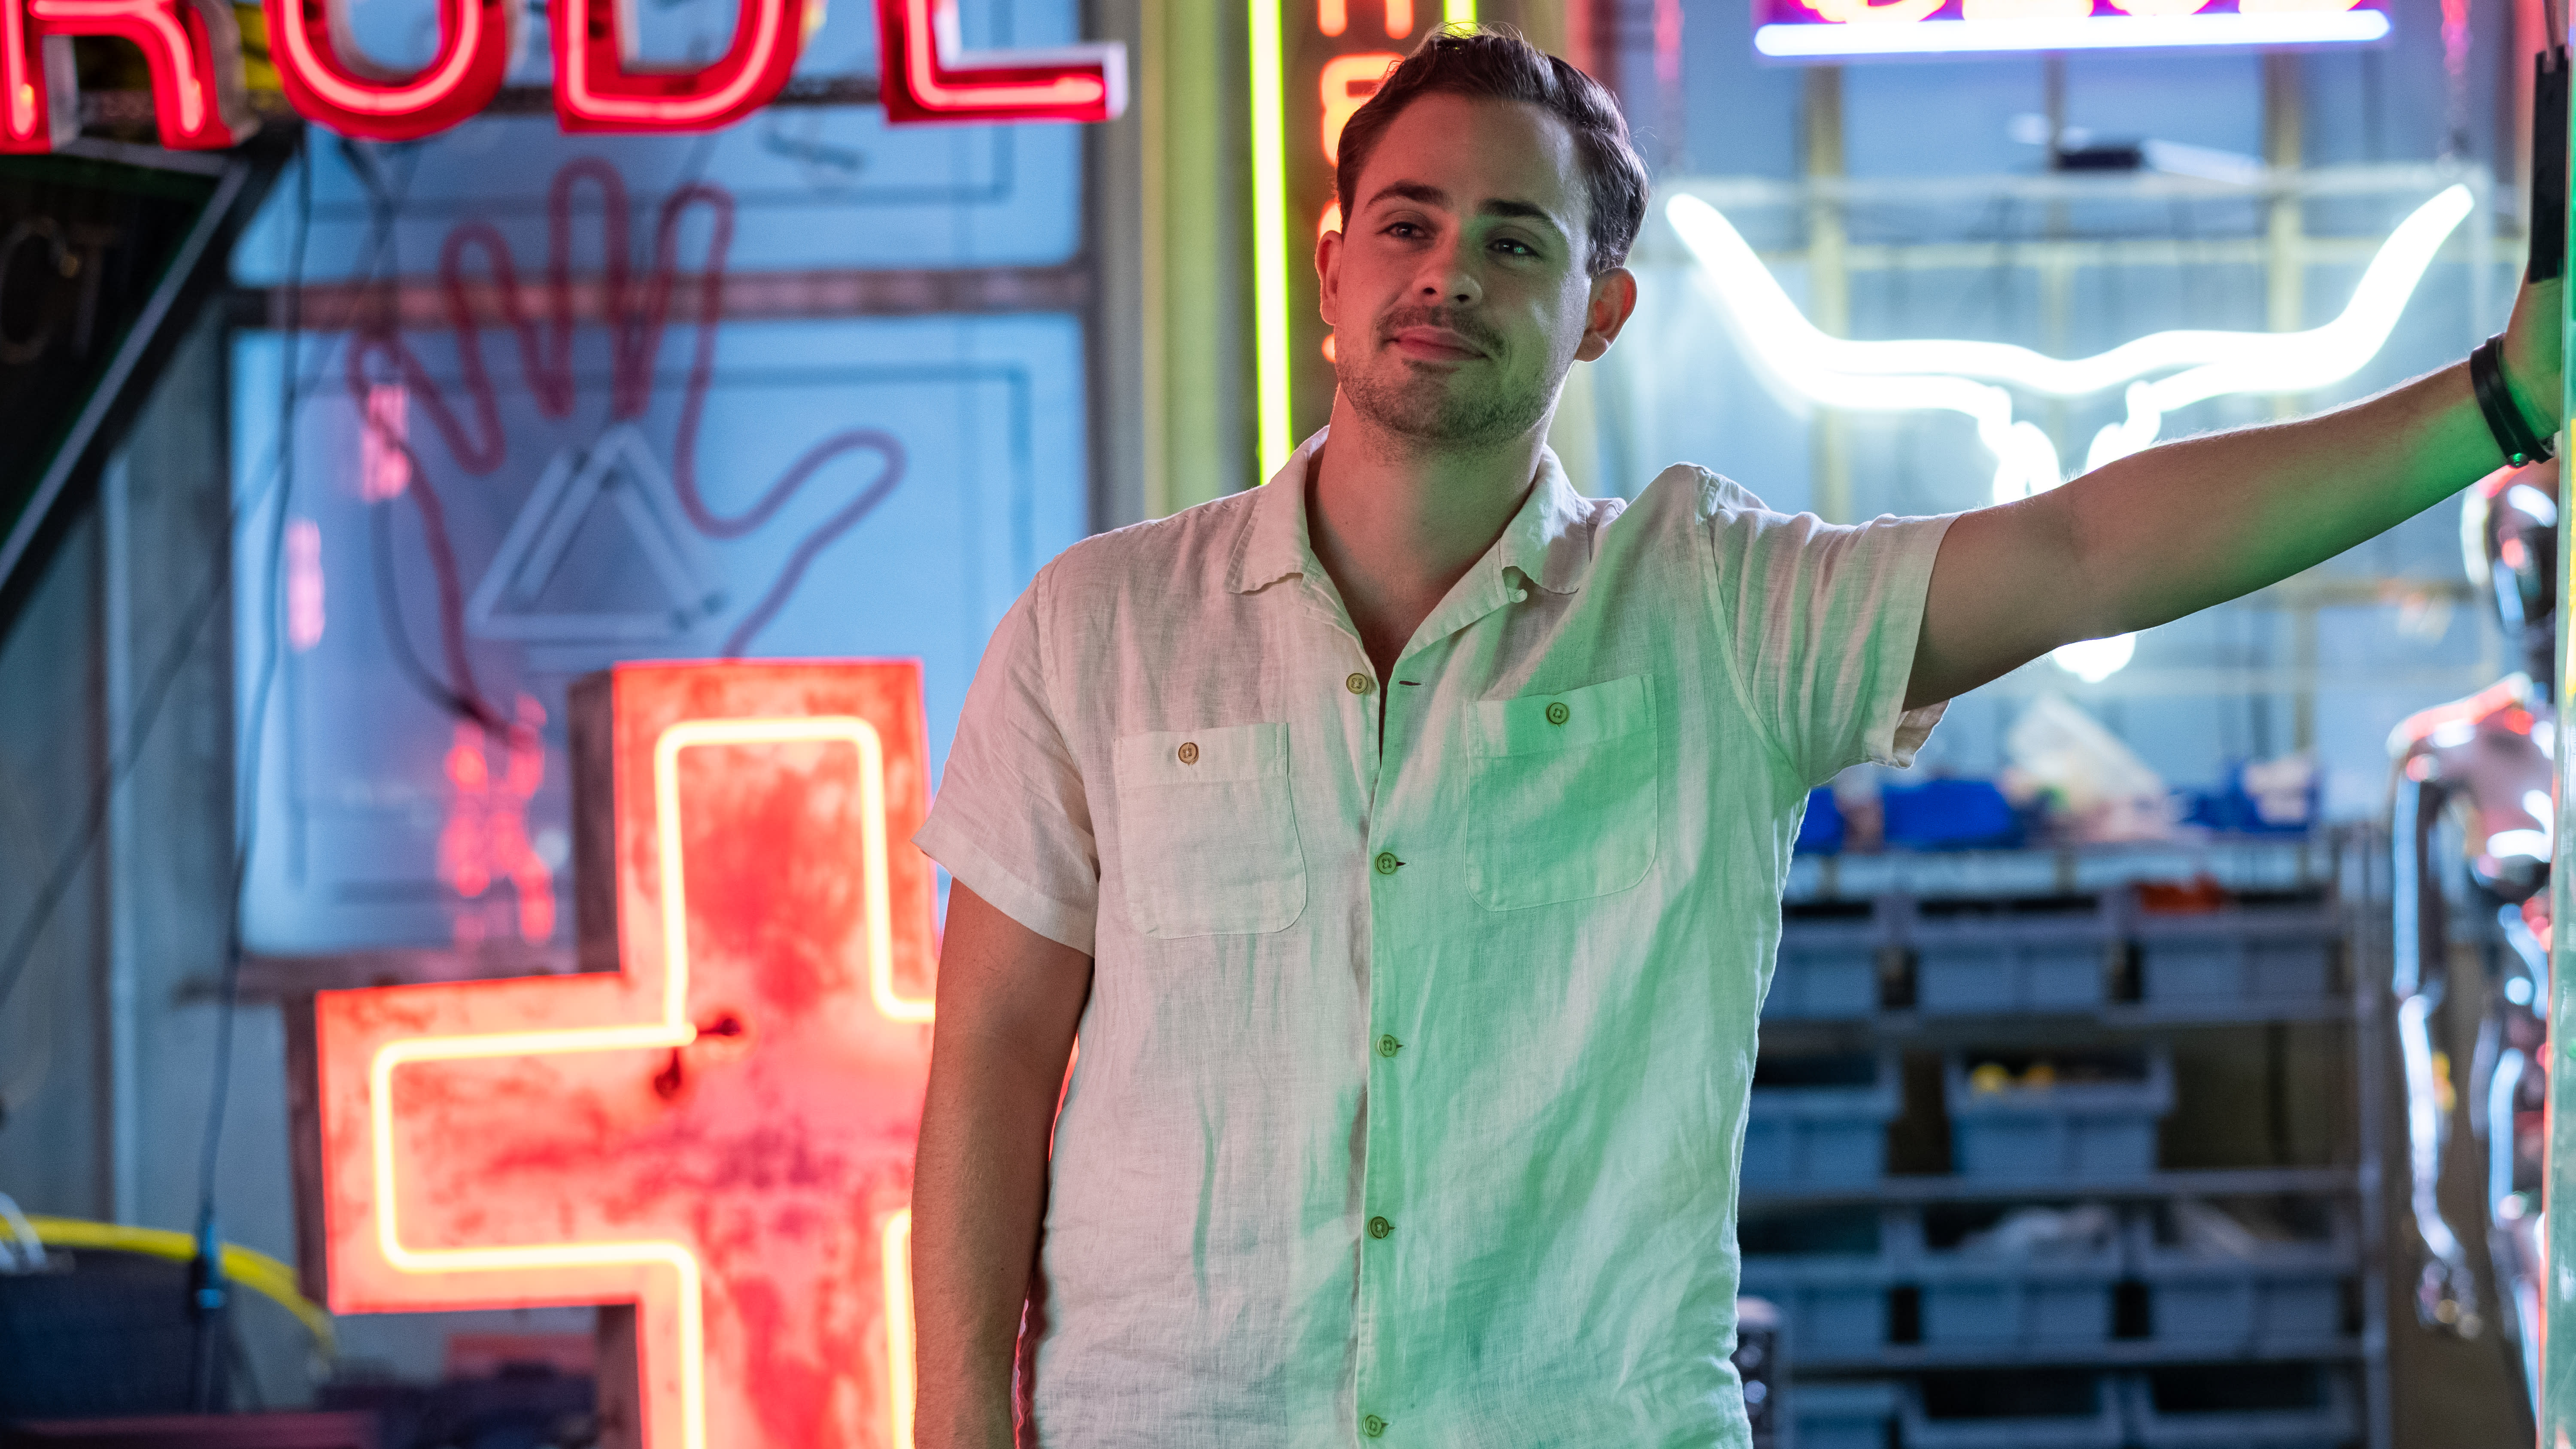 Dacre Montgomery in 'The Broken Hearts Gallery'. (Credit: George Kraychyk/TriStar Pictures)